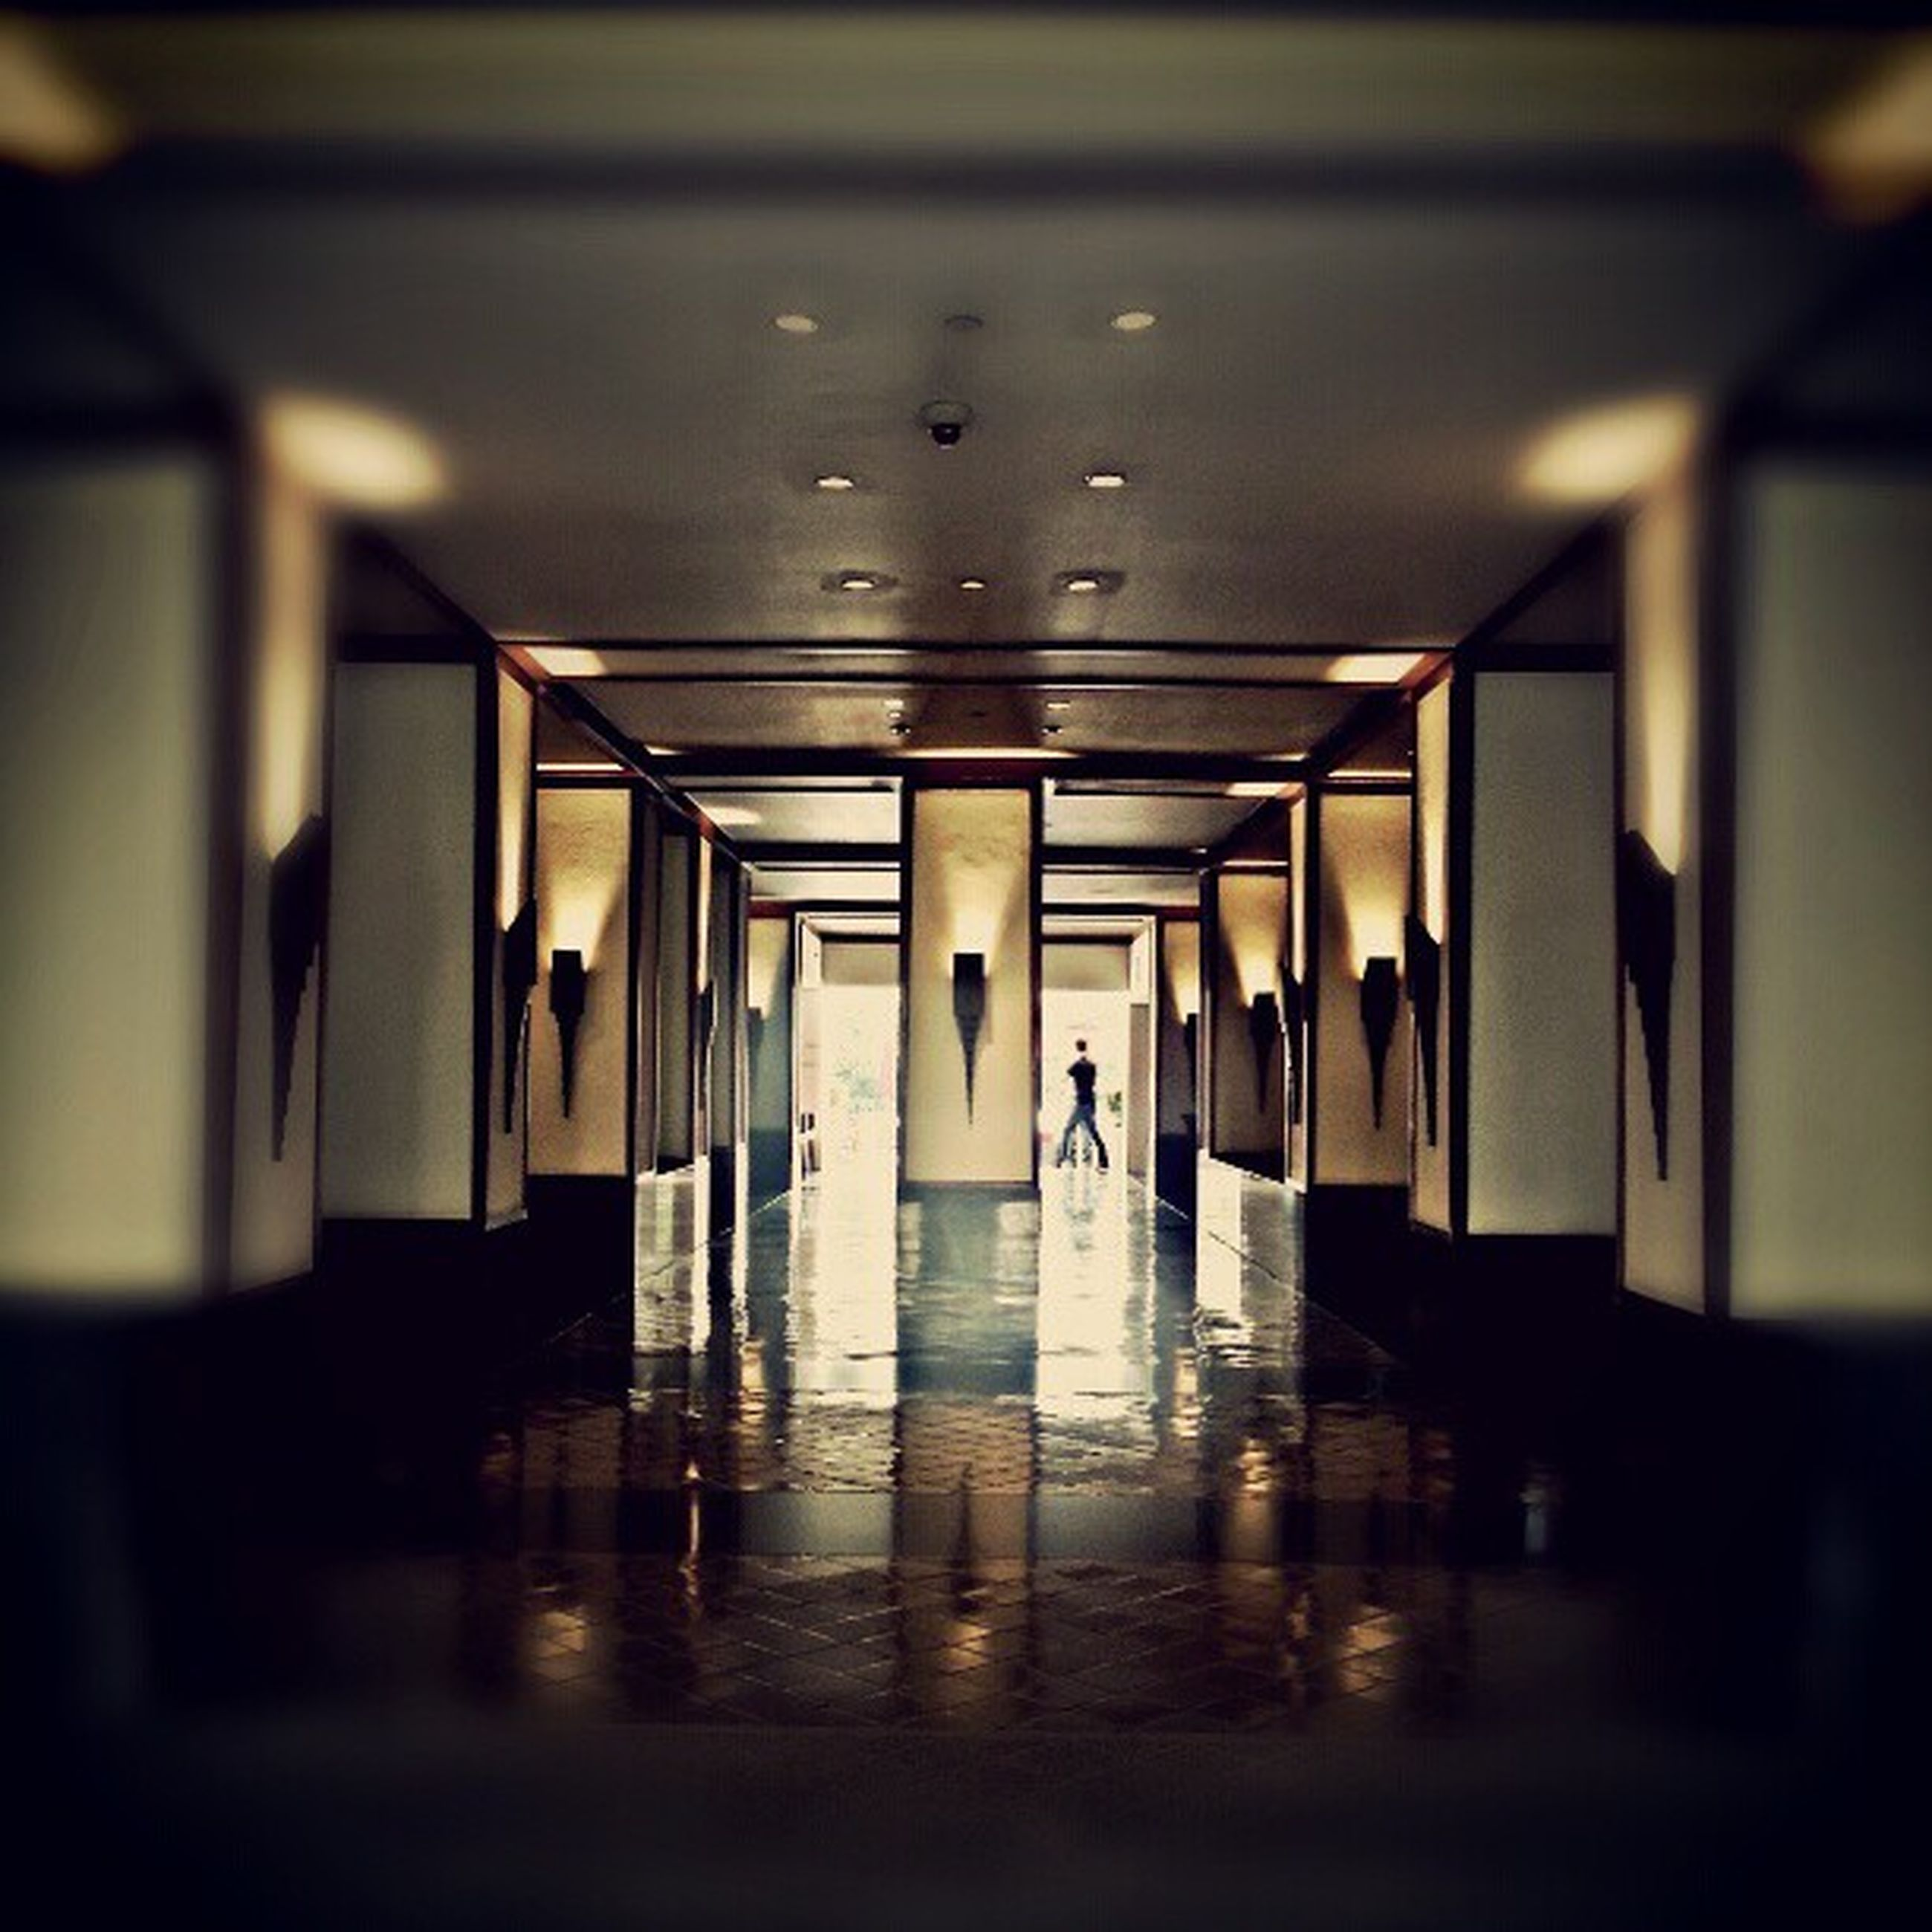 indoors, reflection, empty, in a row, illuminated, window, water, flooring, ceiling, selective focus, glass - material, absence, table, no people, built structure, architecture, interior, transparent, corridor, surface level